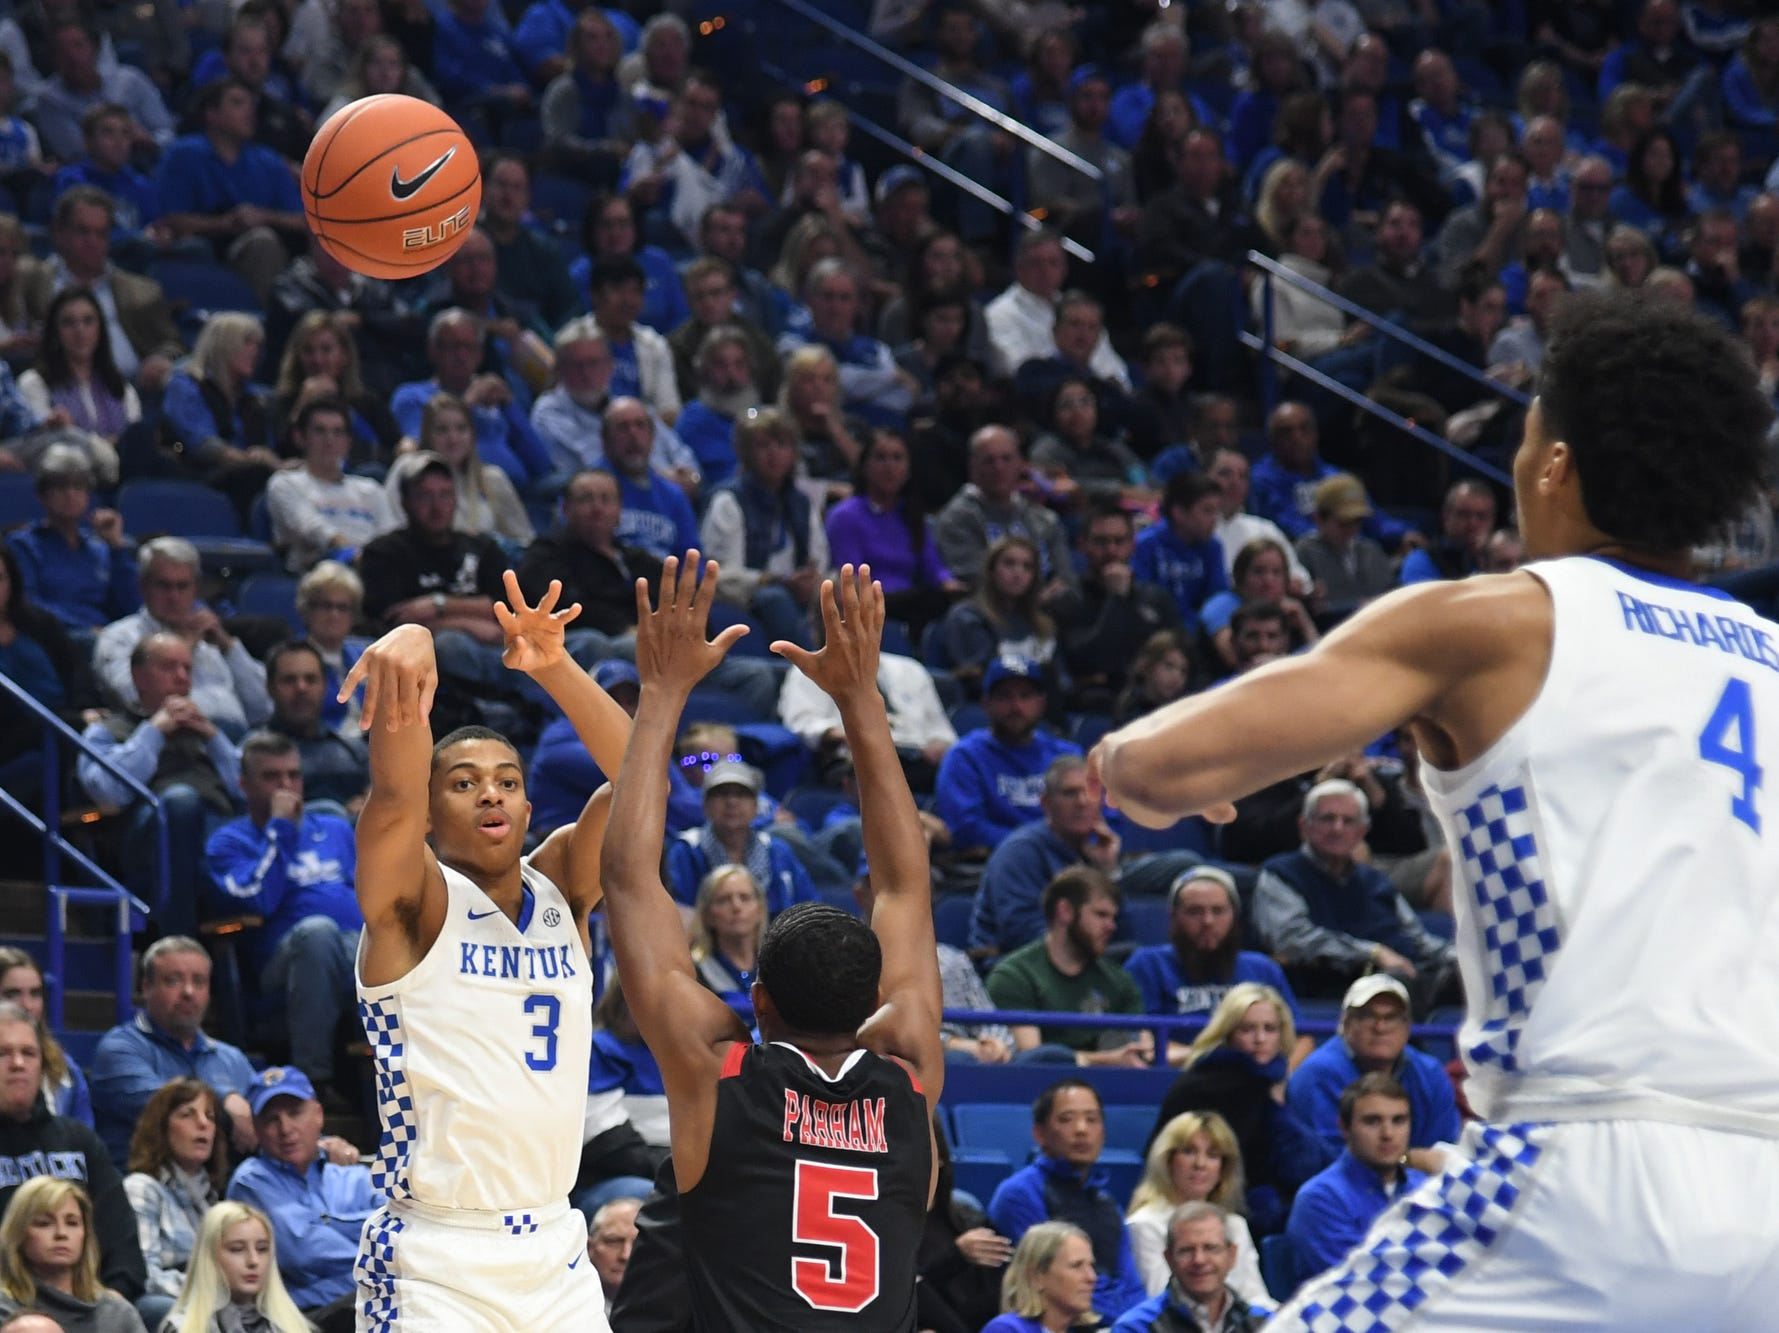 UK G Keldon Johnson passes to F Nick Richards during the University of Kentucky mens basketball game against VMI at Rupp Arena in Lexington, Kentucky on Sunday, November 18, 2018.